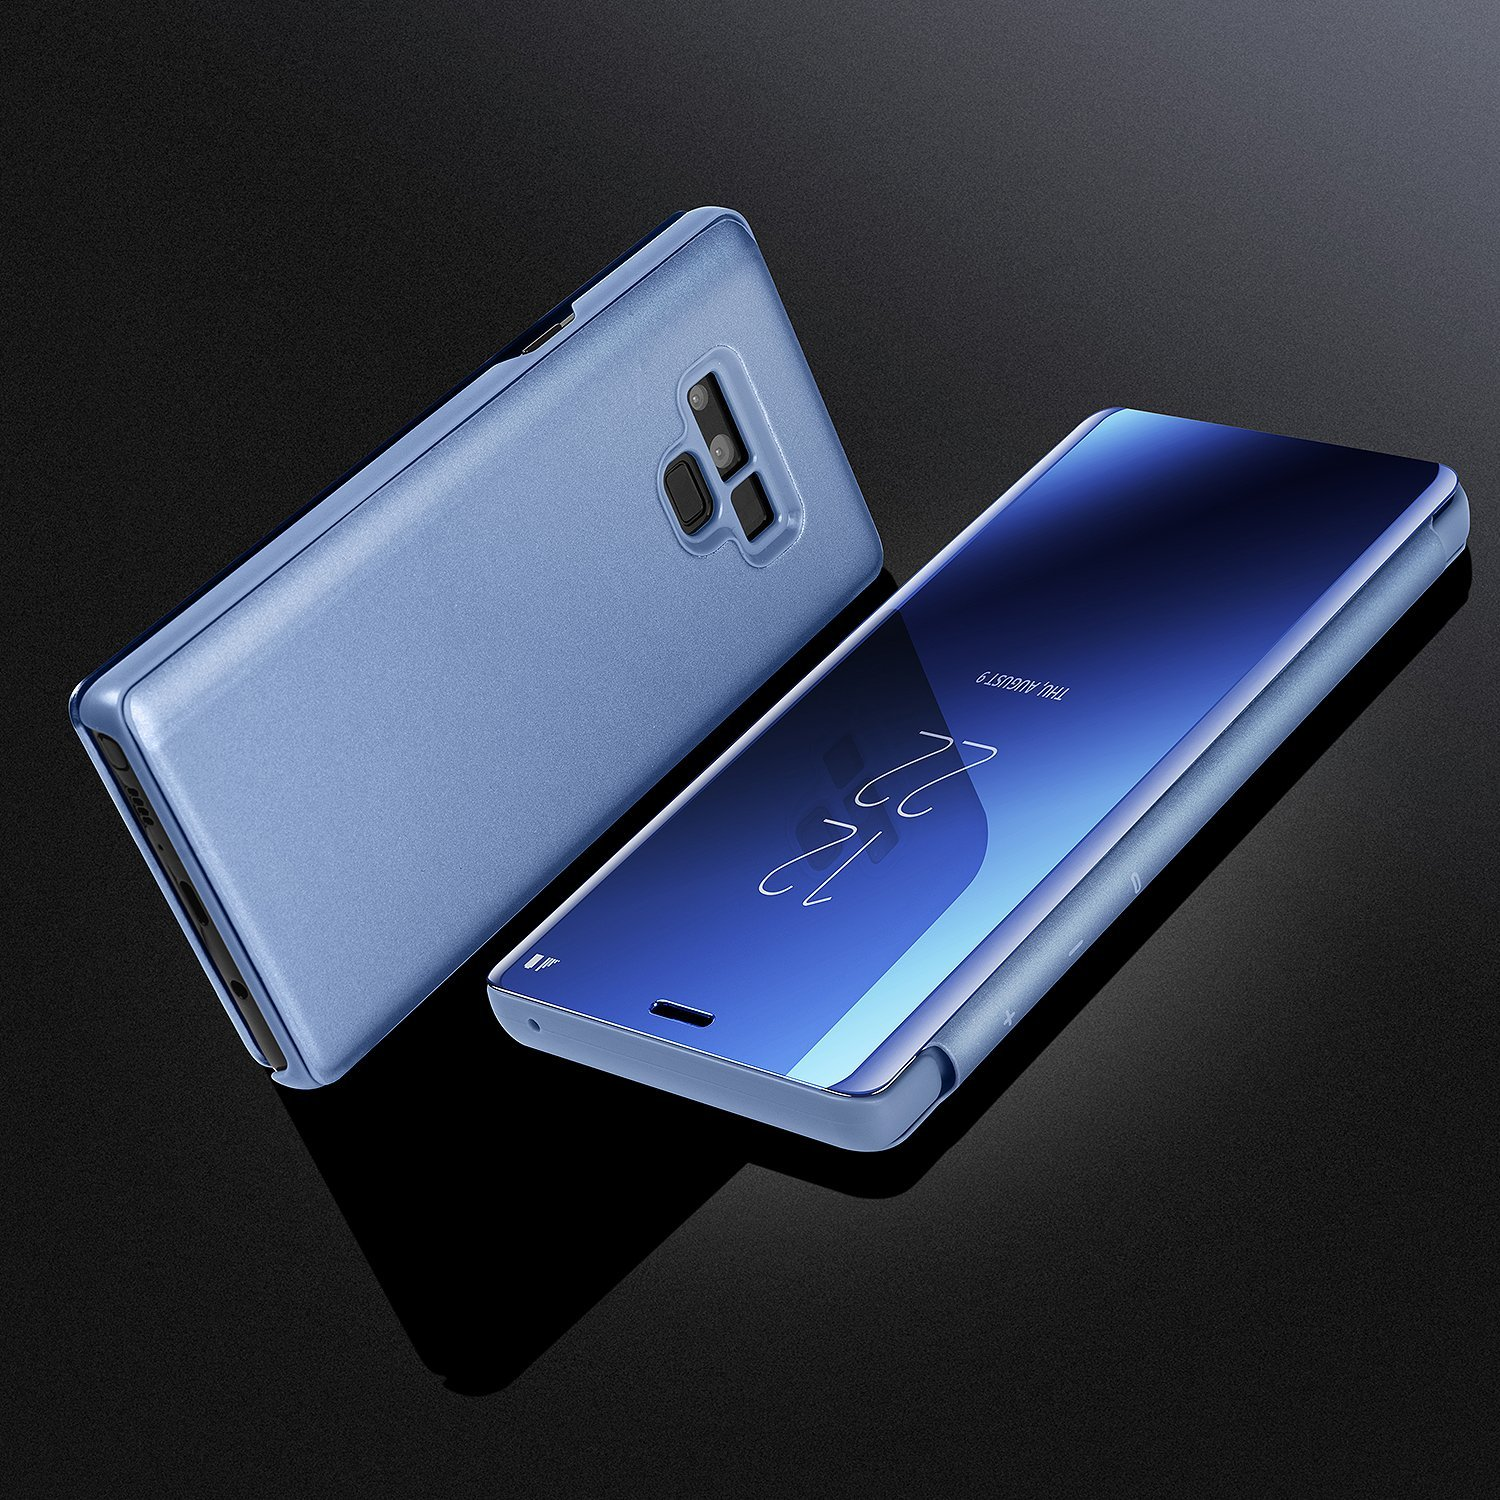 Galaxy Note 9 Case,WATACH Smart Clear View Makeup Mirror Electroplate Plating Kickstand Feature Full Body Protective Flip Folio Cover for Galaxy Note 9 (Blue) by WATACHE (Image #7)